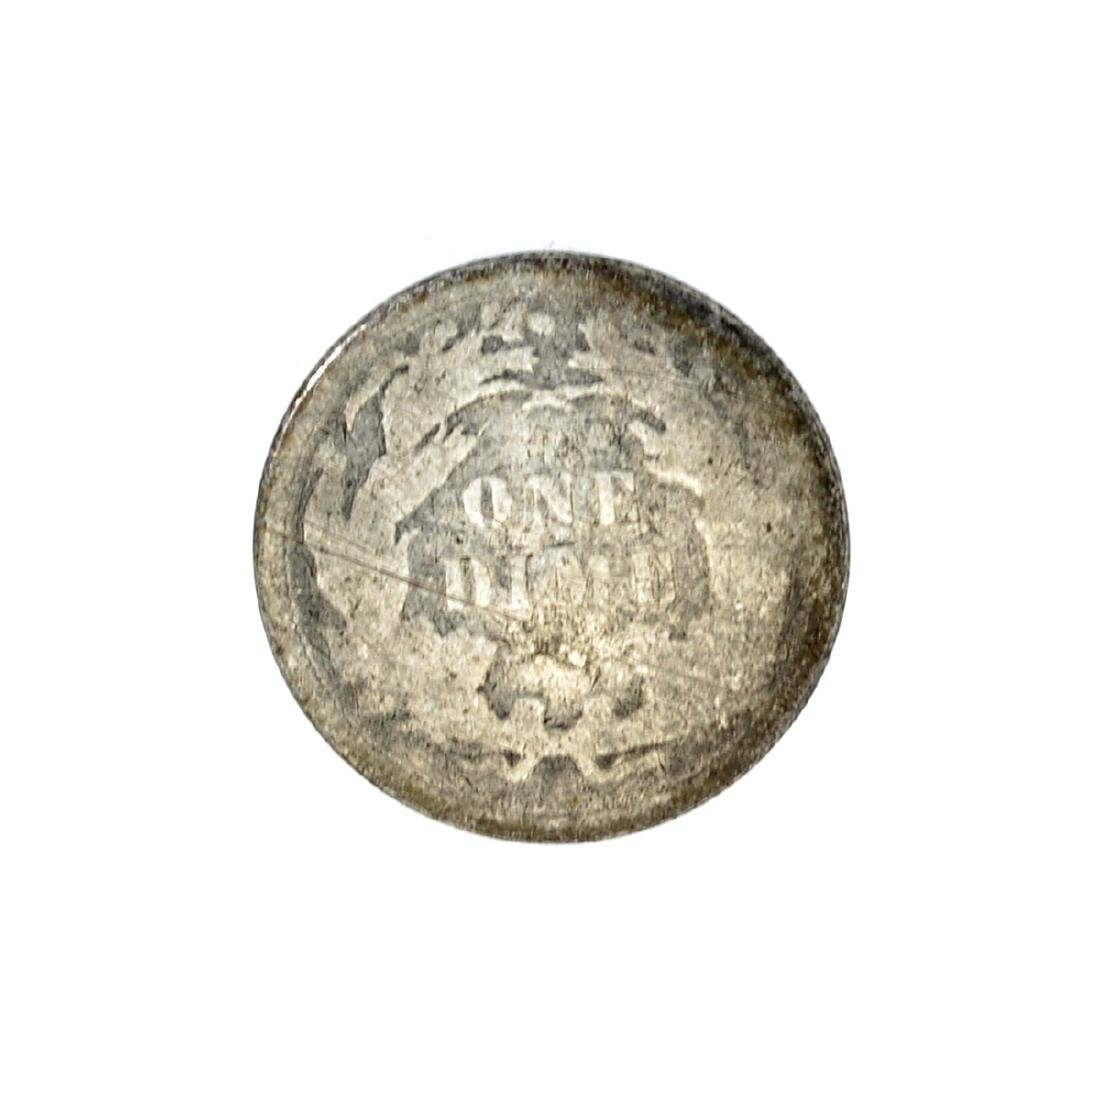 1877 Liberty Seated Dime Coin - 2